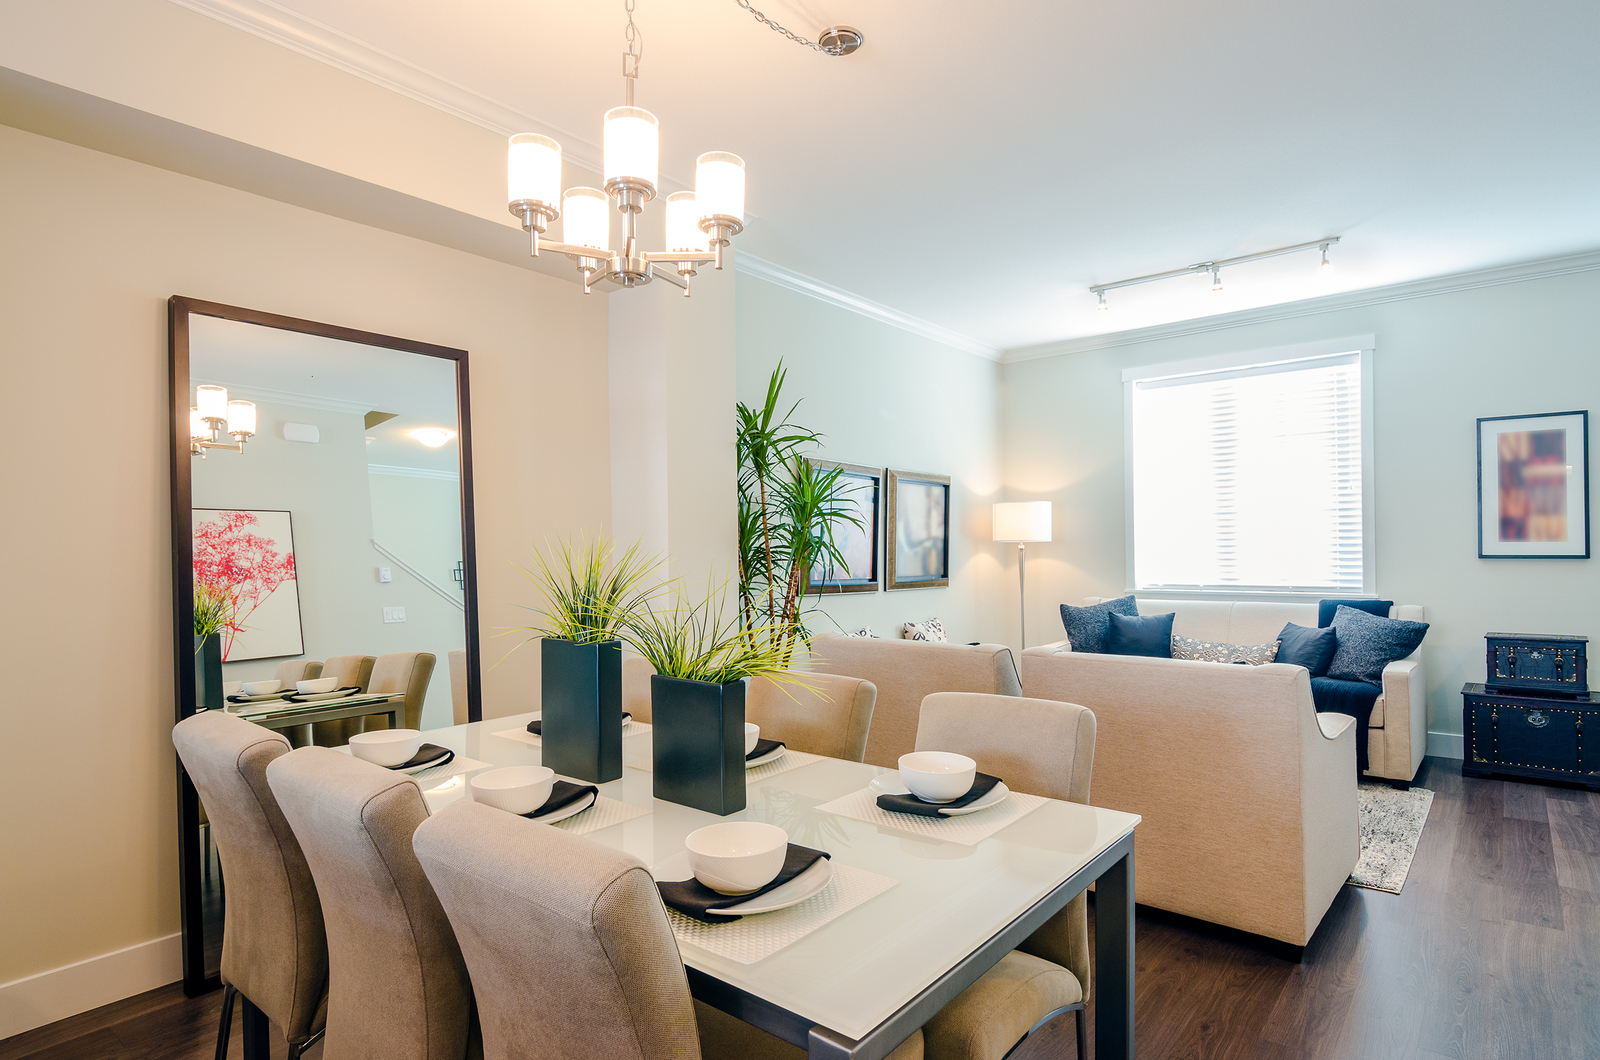 Stylish Dining Room Decor Ideas For Small Spaces